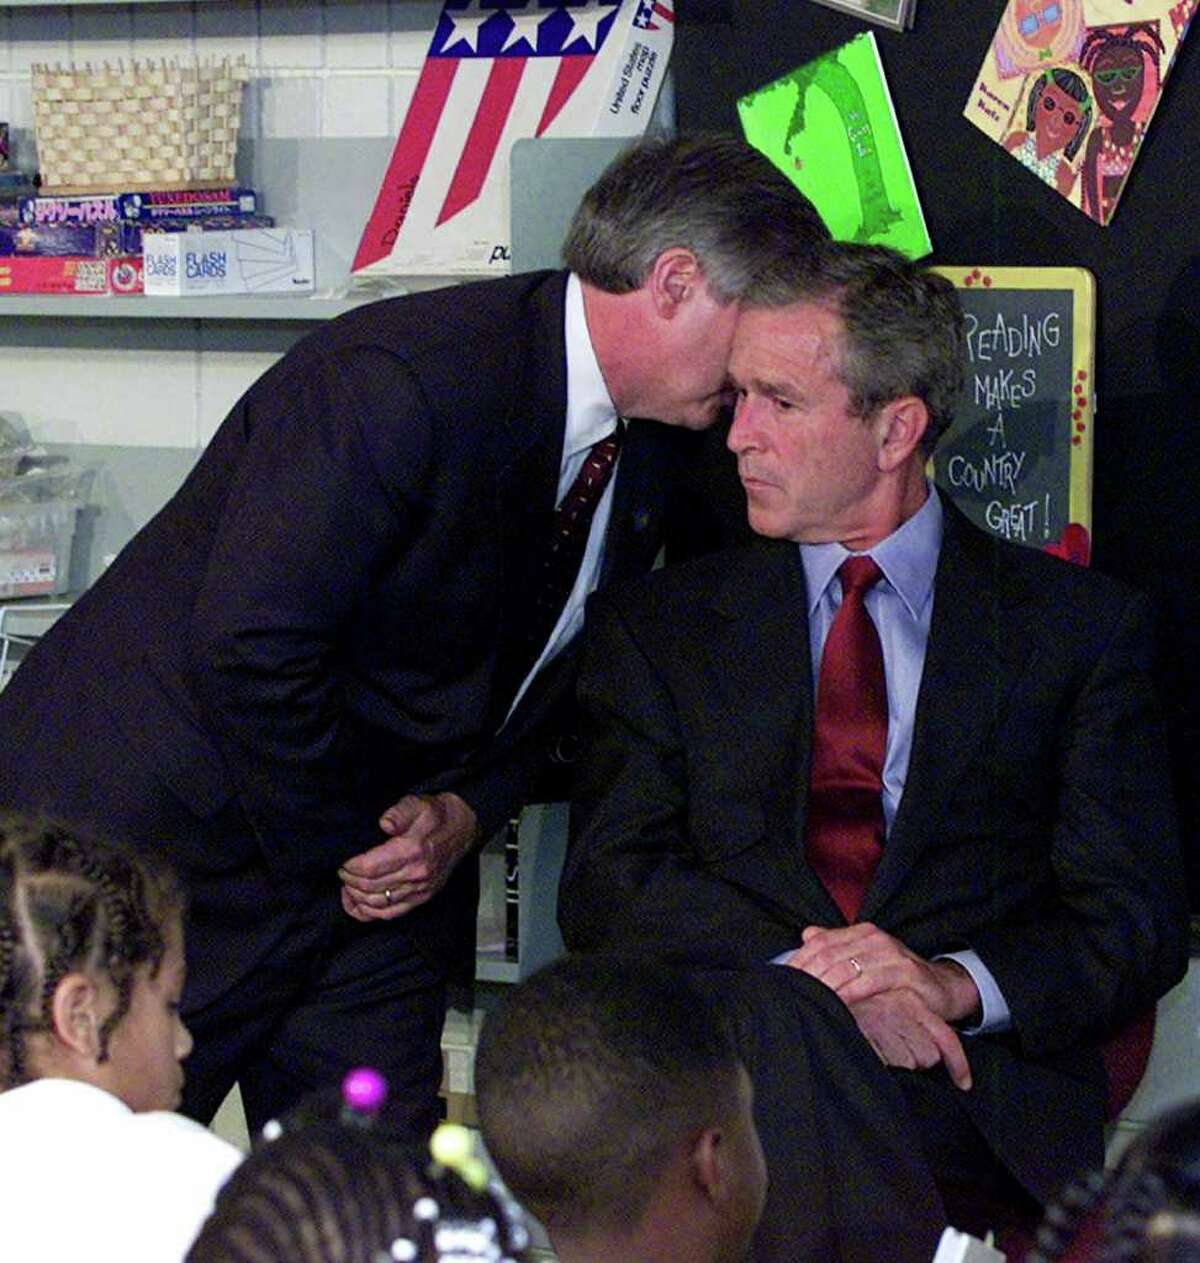 FILE - In this Tuesday, Sept. 11, 2001 file photo, Chief of Staff Andy Card whispers into the ear of President George W. Bush to give him word of the plane crashes into the World Trade Center, during a visit to the Emma E. Booker Elementary School in Sarasota, Fla. (AP Photo/Doug Mills, File)